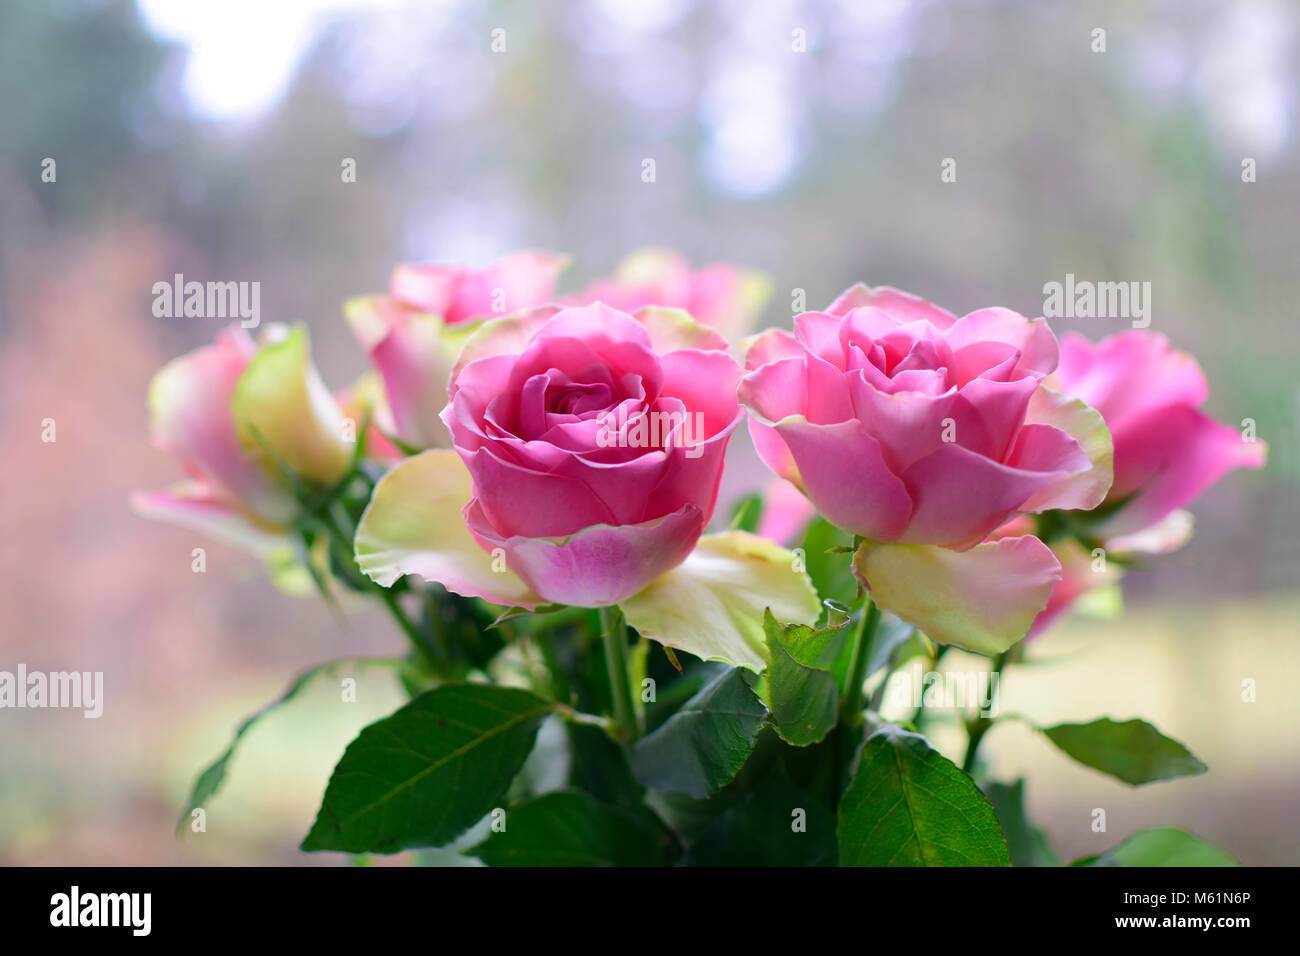 beautiful pink rose on blurred texture background, romantic symbol